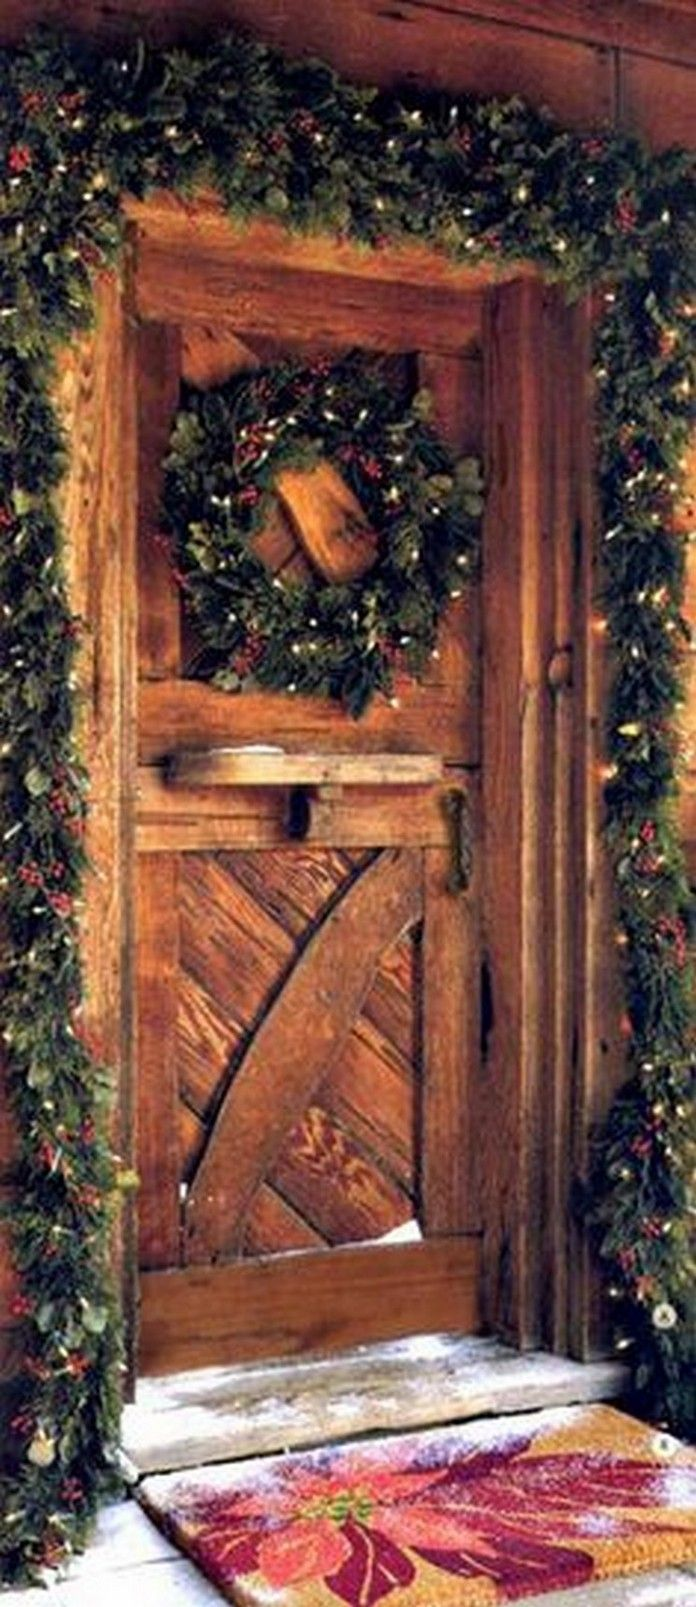 Time to get ready for the holidays at the rustic cabin.